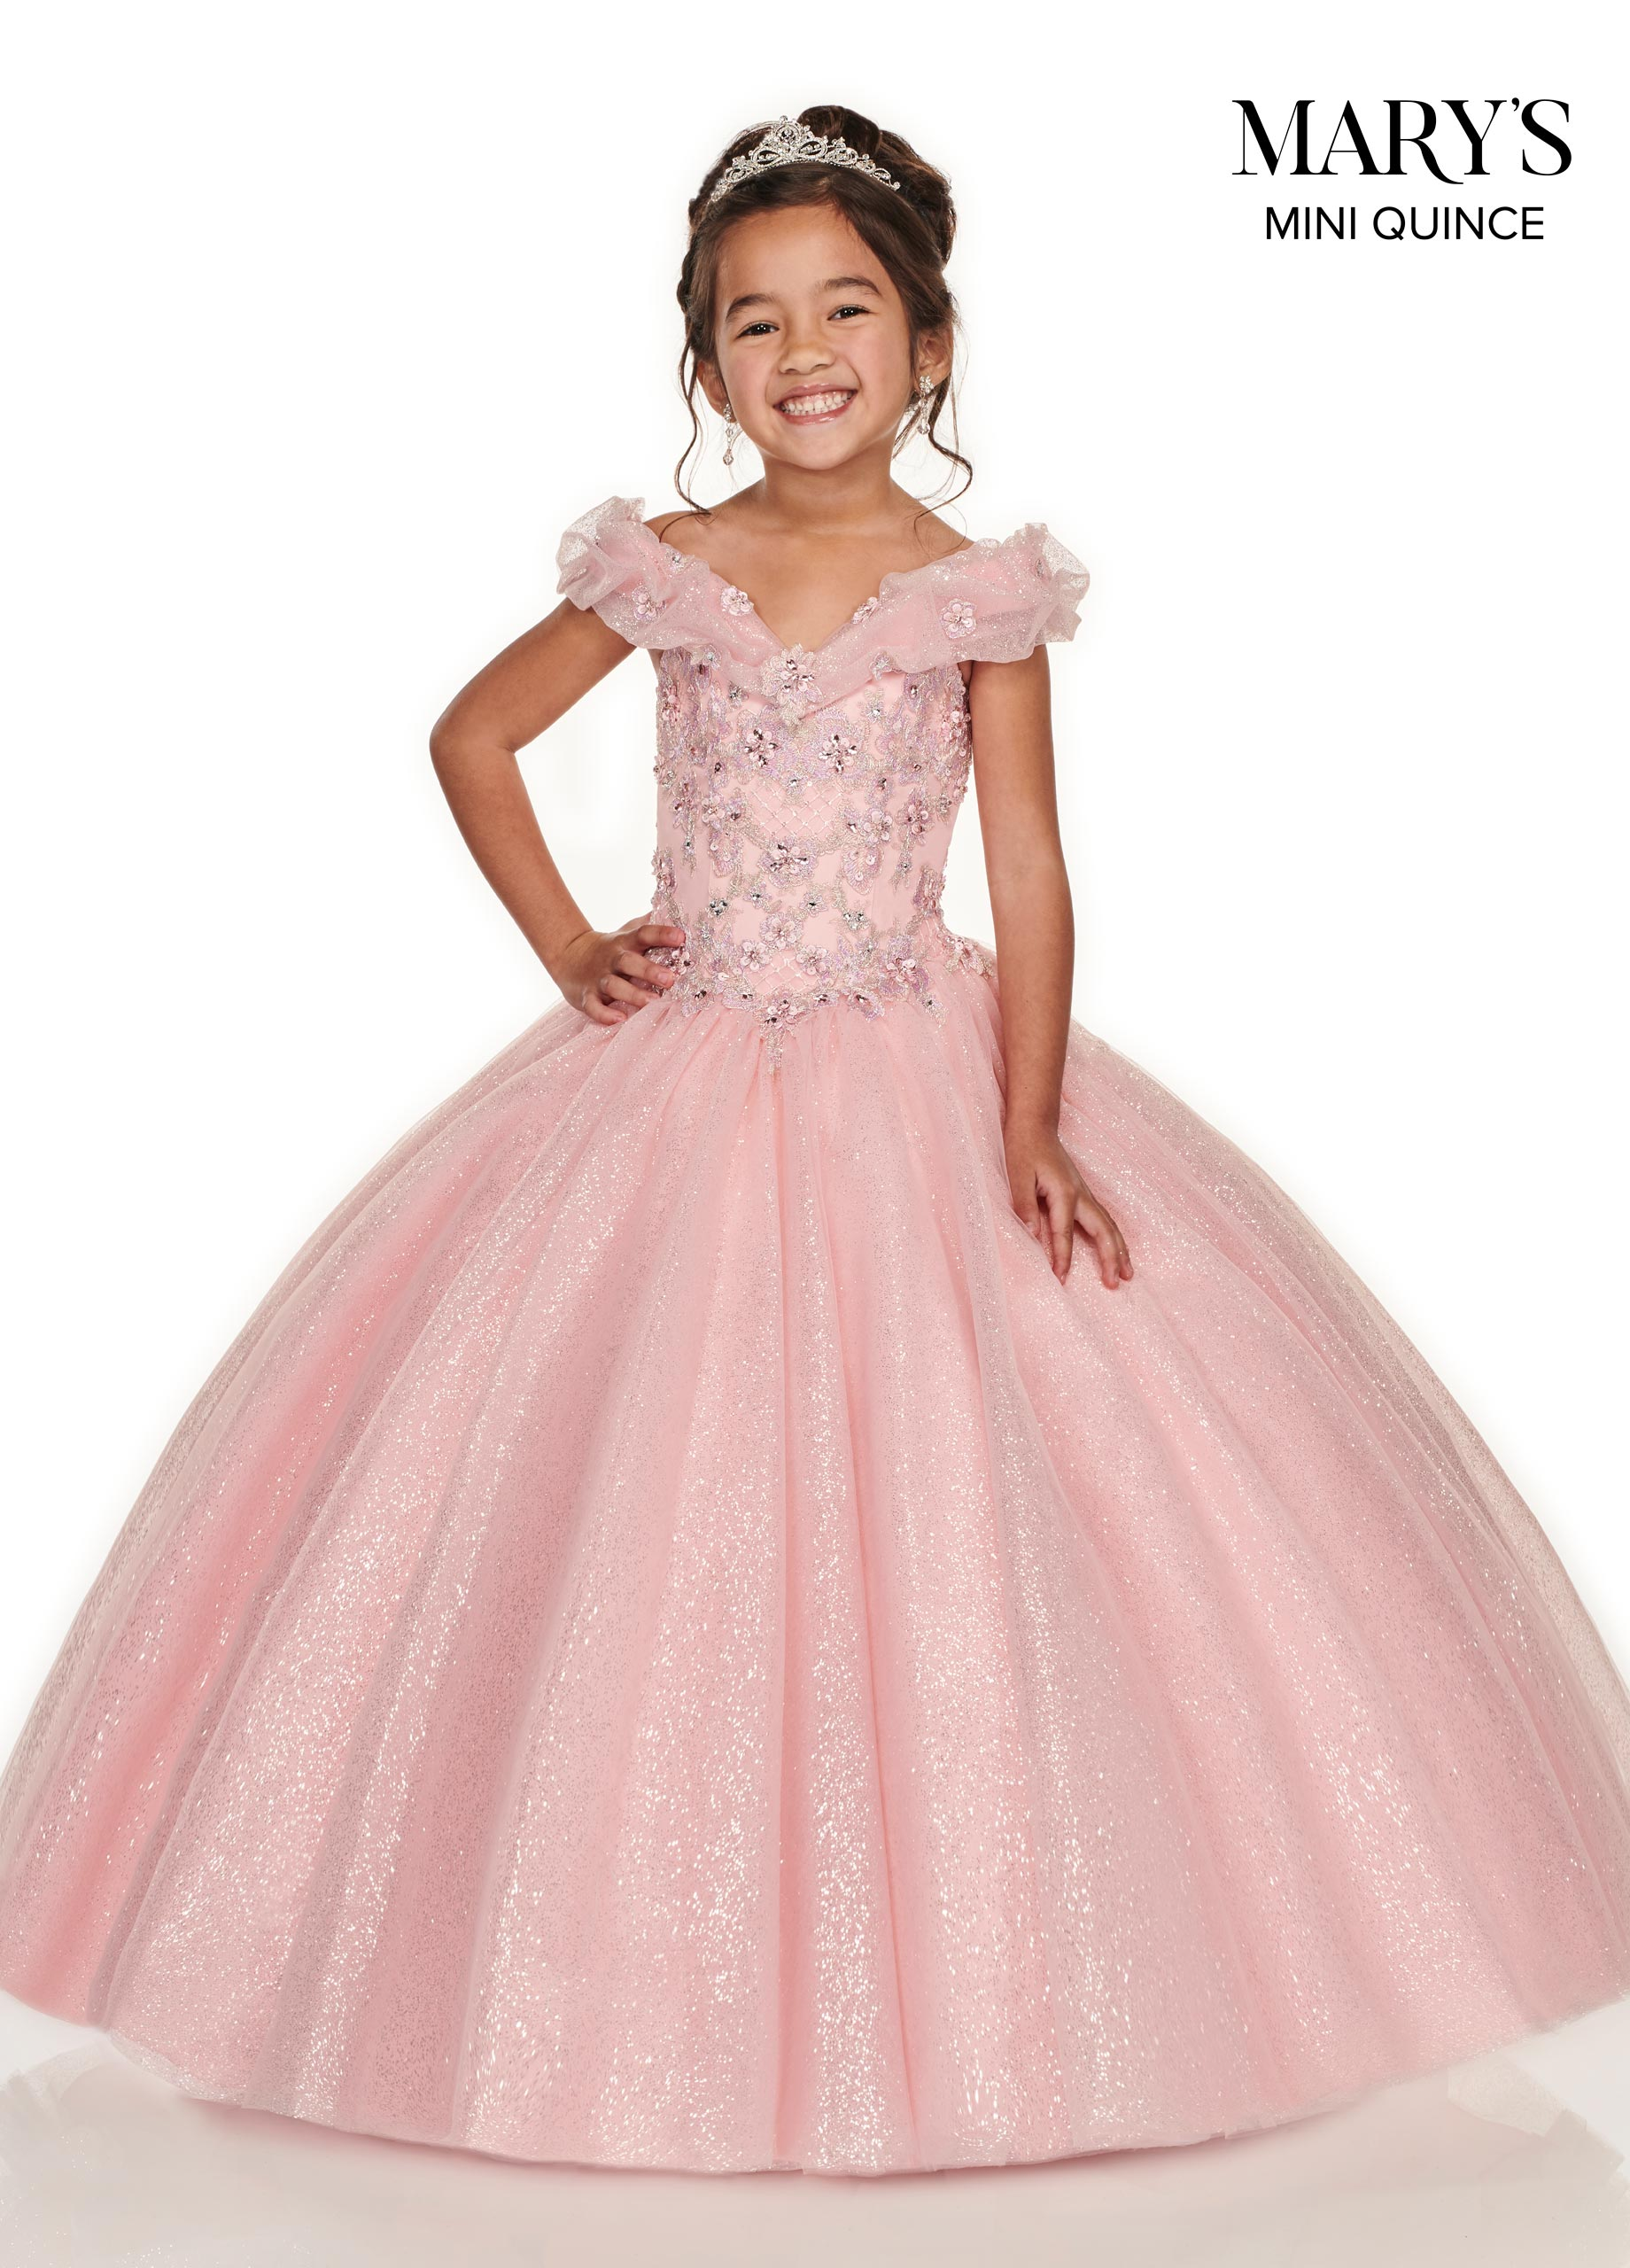 Little Quince Dresses | Mini Quince | Style - MQ4012